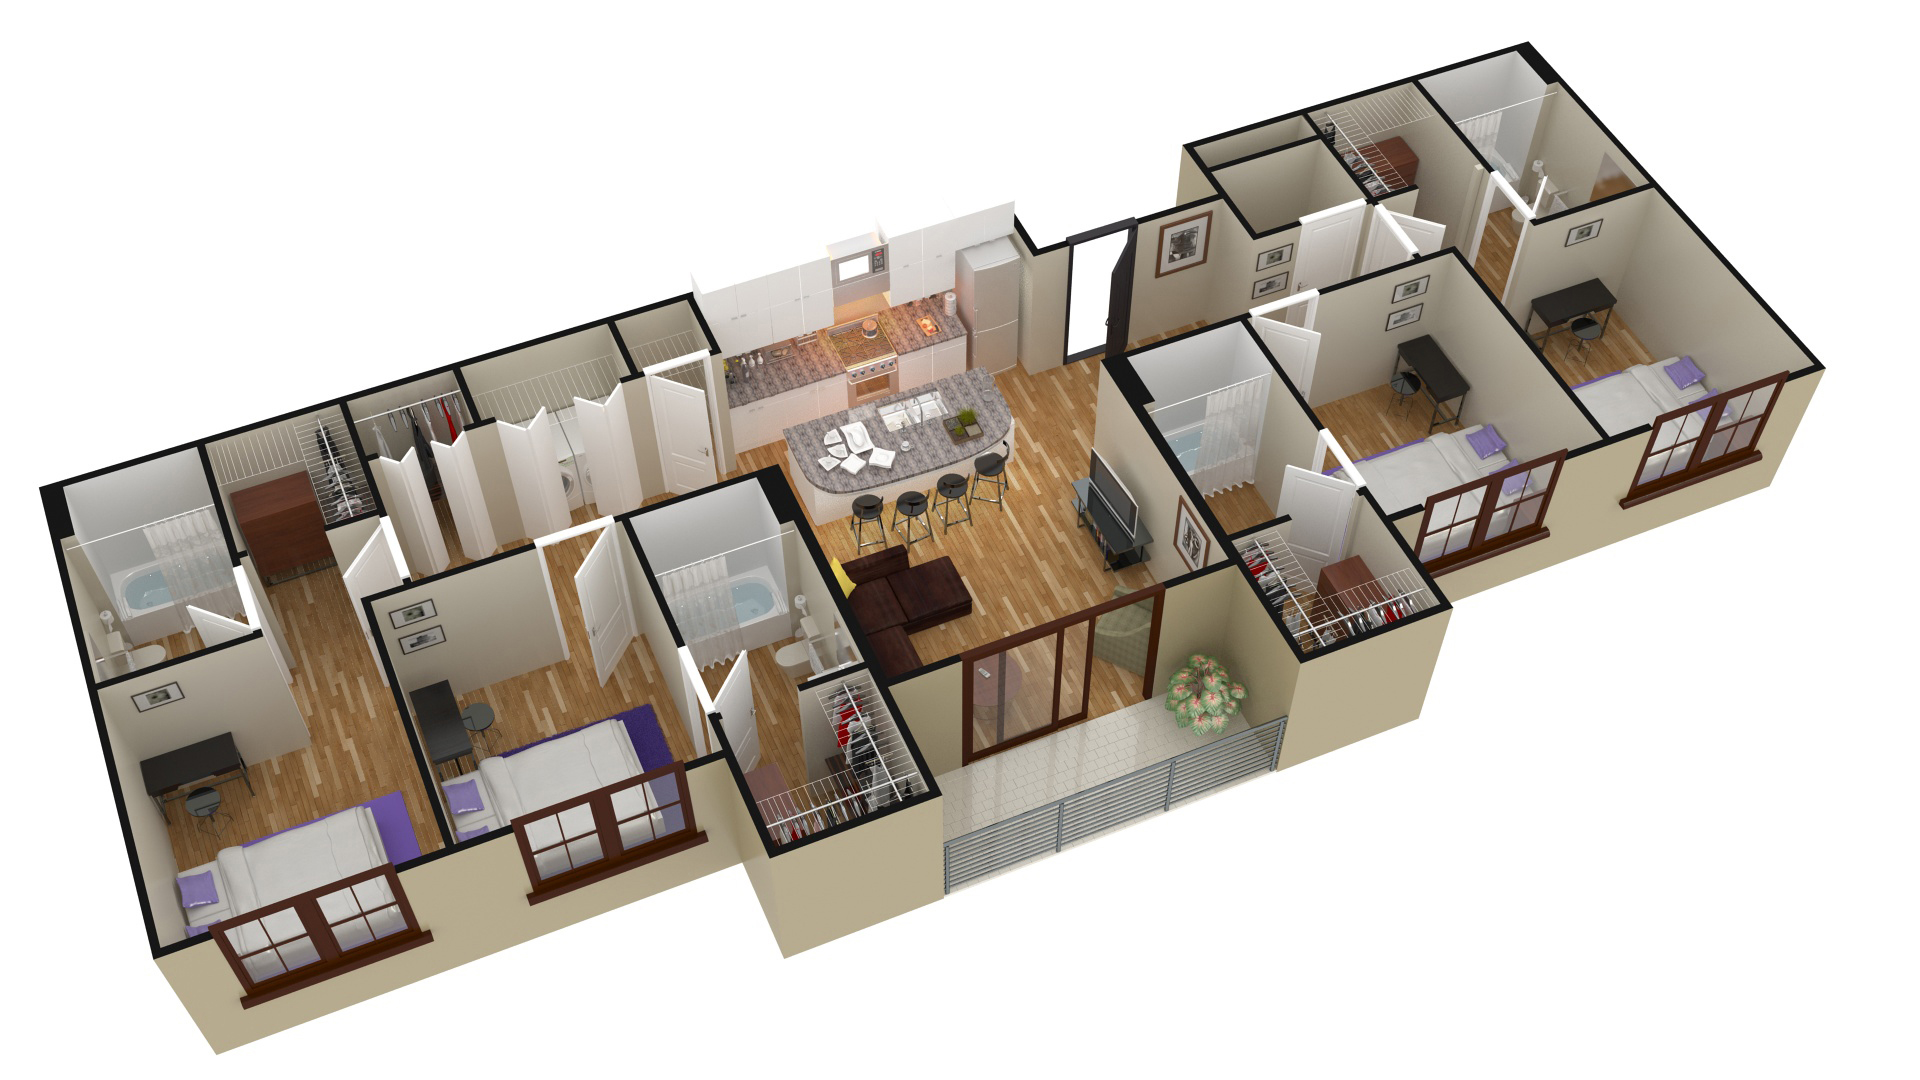 3D Floor Plans — 24h Site Plans for Building Permits Site Plan